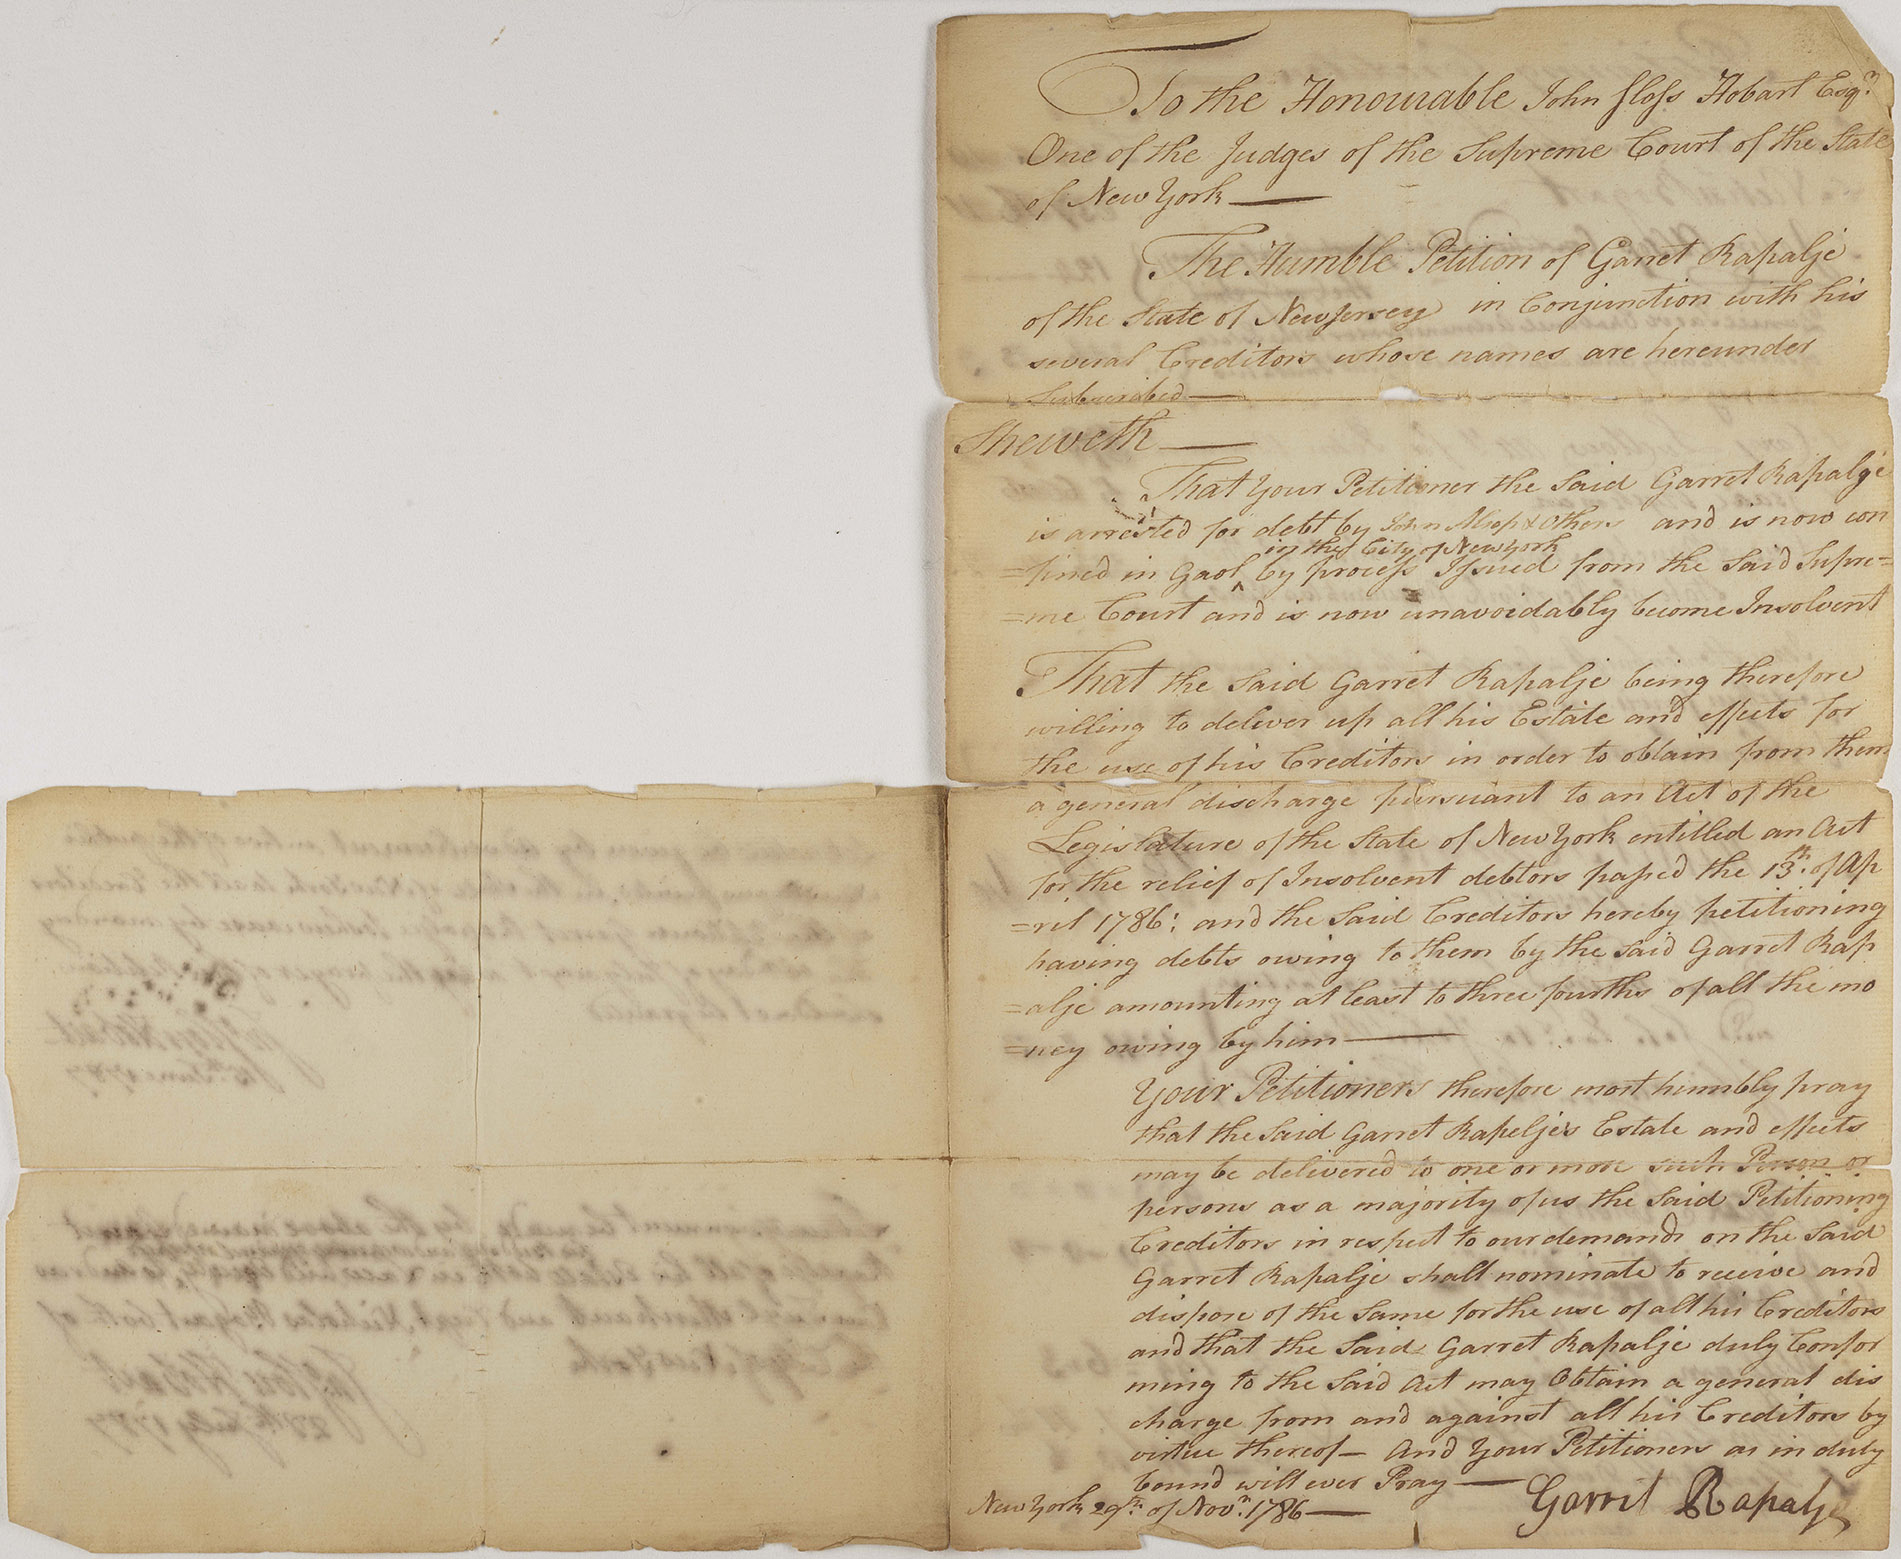 Petition of Garret Rapalje and his creditors to Judge John Sloss Hobart, signed by Garret Rapalje, 1786. NYC Municipal Archives.